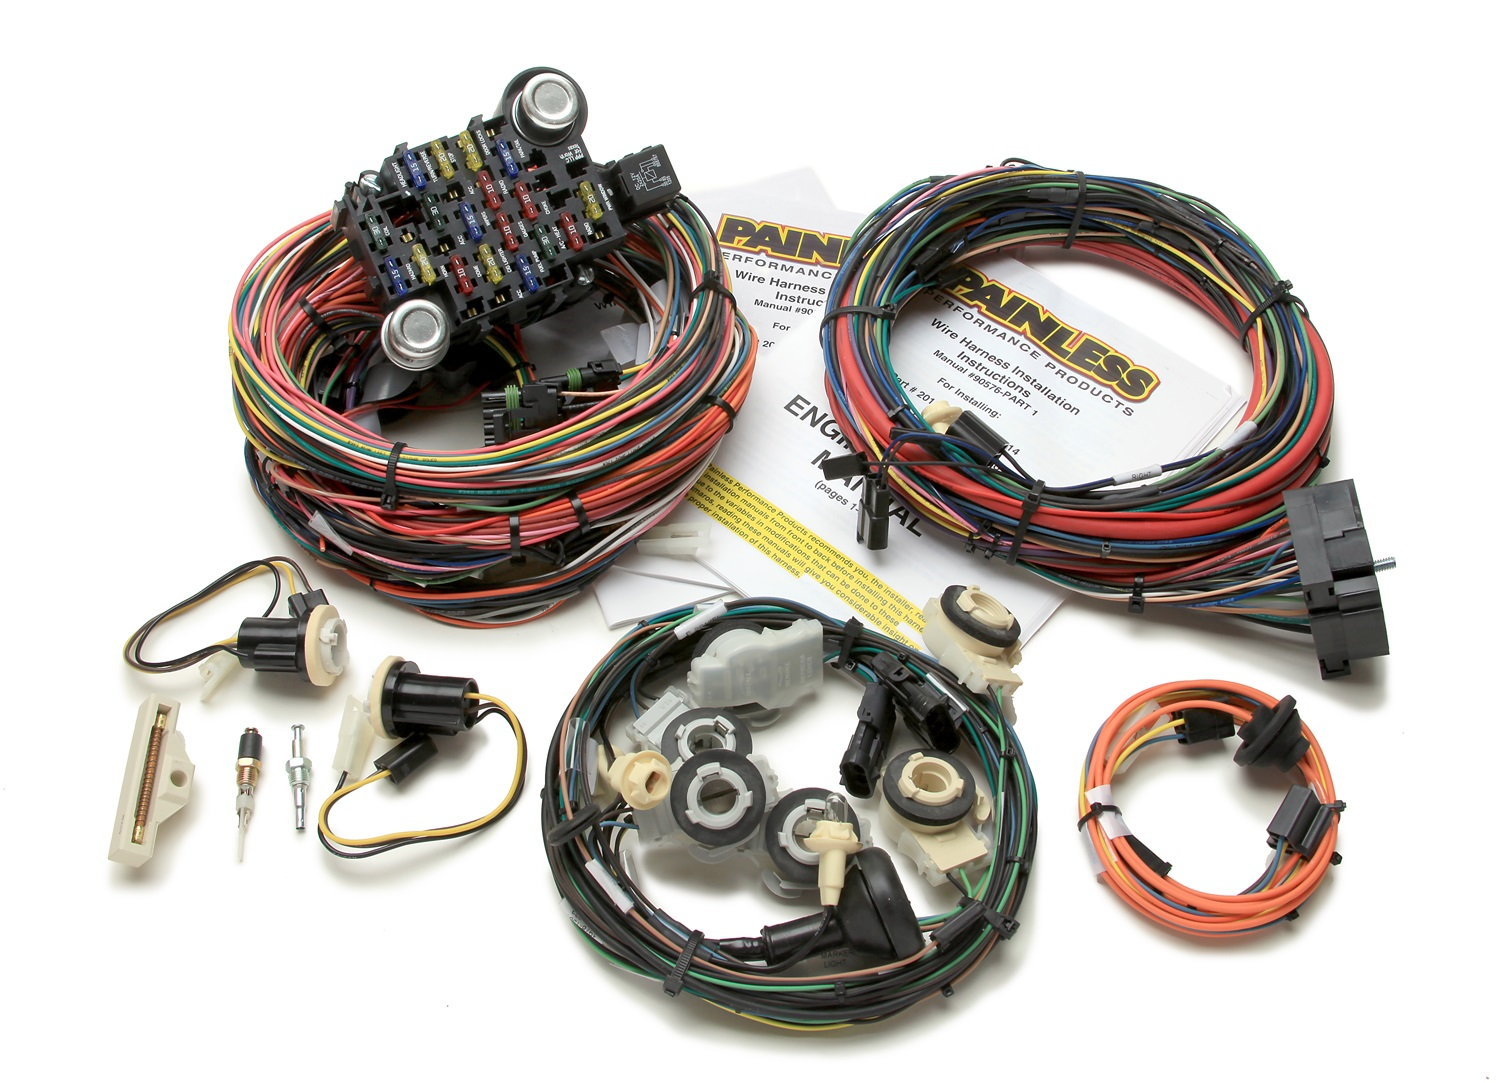 hight resolution of details about painless wiring 20114 26 circuit direct fit harness fits 78 81 camaro